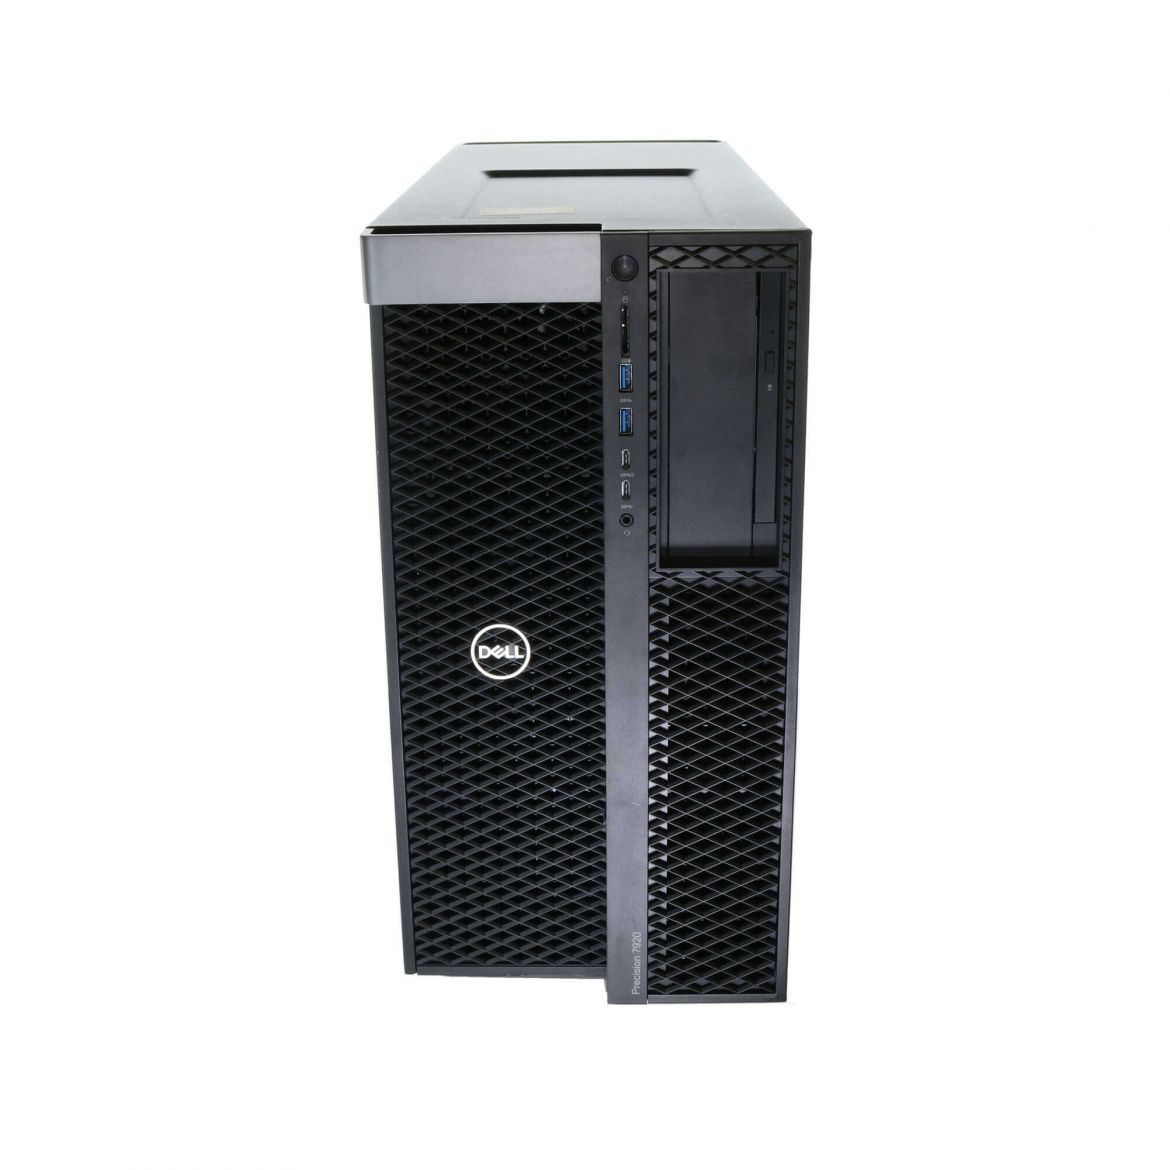 Dell T7920 Workstation 1